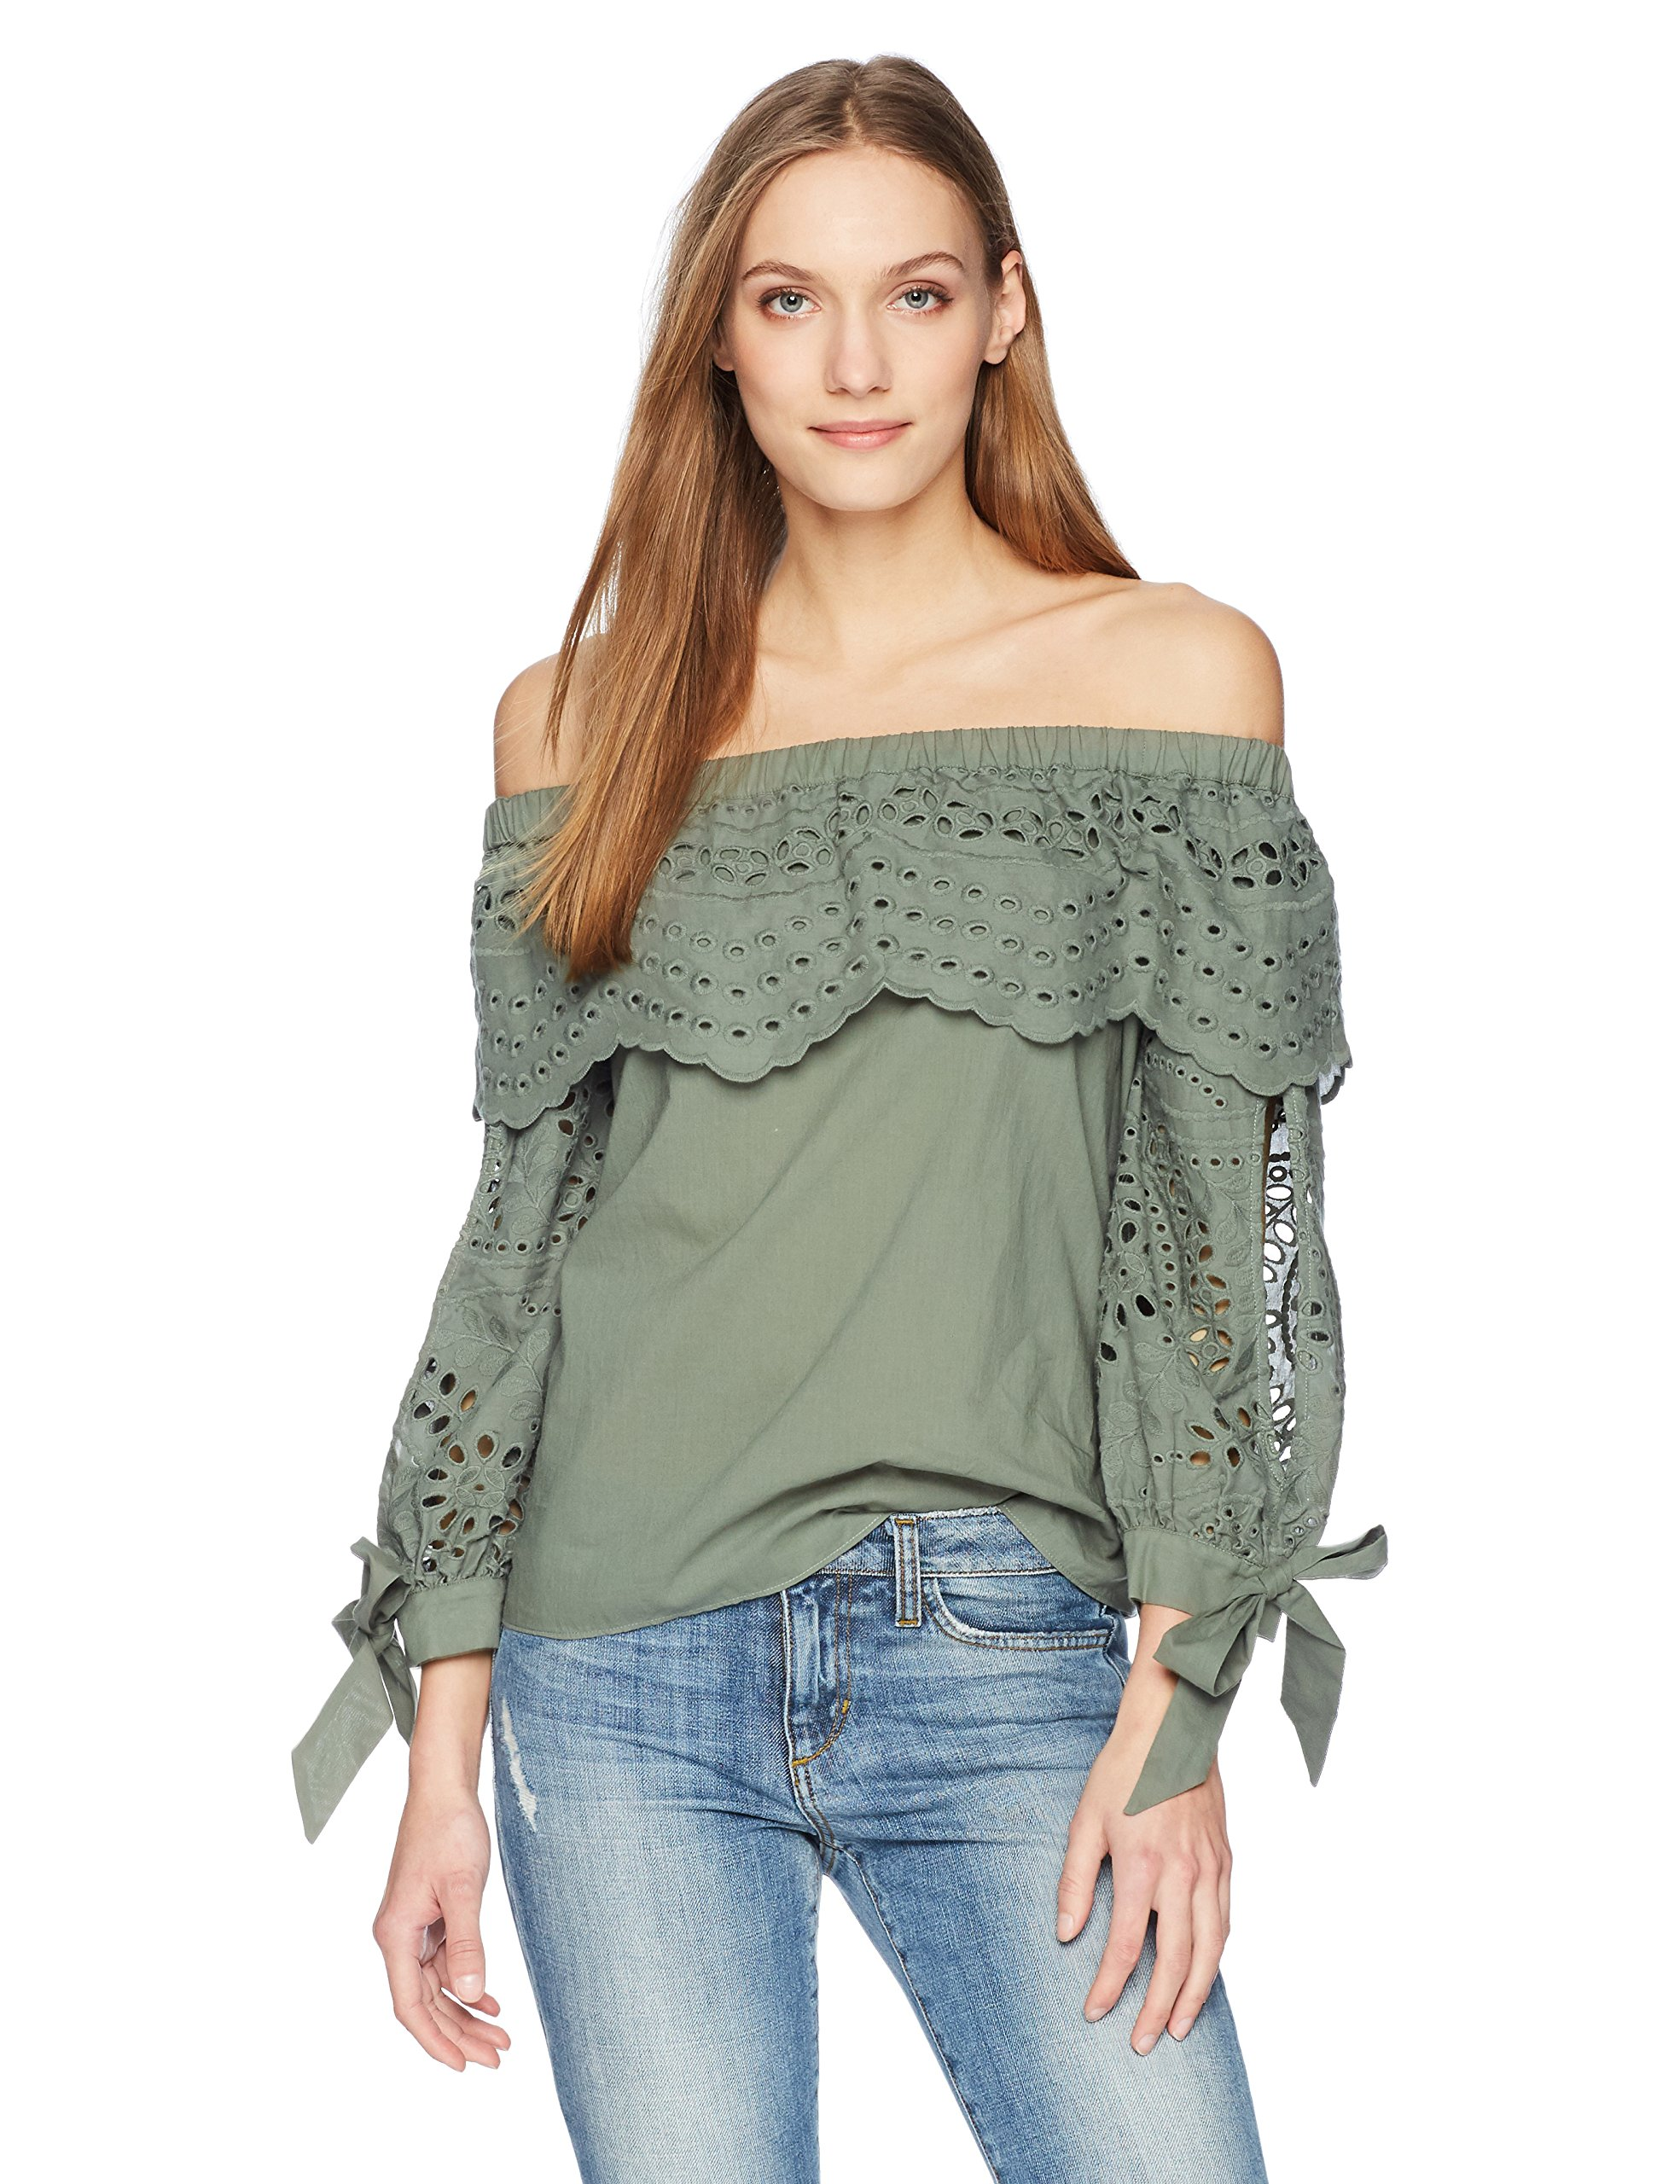 Parker Women's Mandy Off The Shoulder Eyelet Blouse, Greenbrier, L